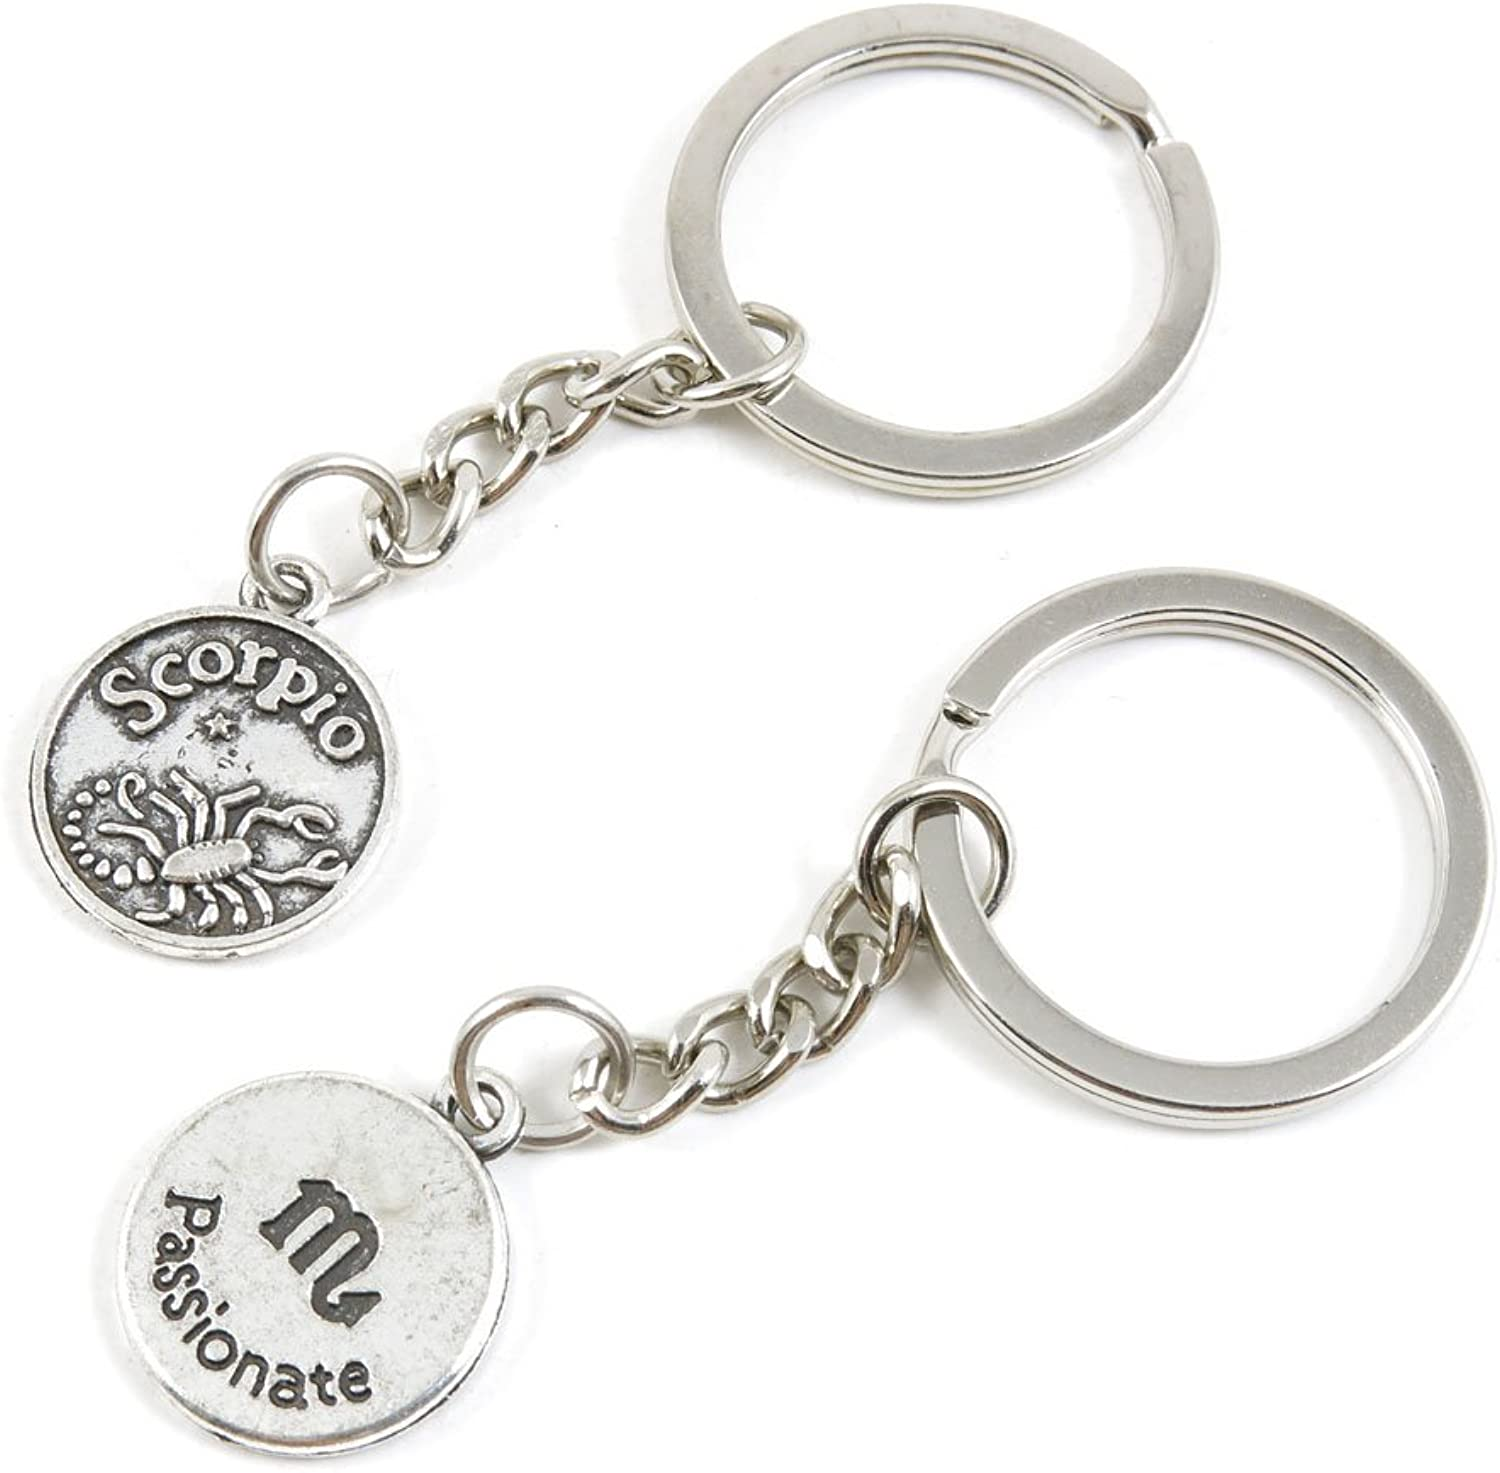 100 Pieces Keychain Keyring Door Car Key Chain Ring Tag Charms Bulk Supply Jewelry Making Clasp Findings M5BF5R Scorpio